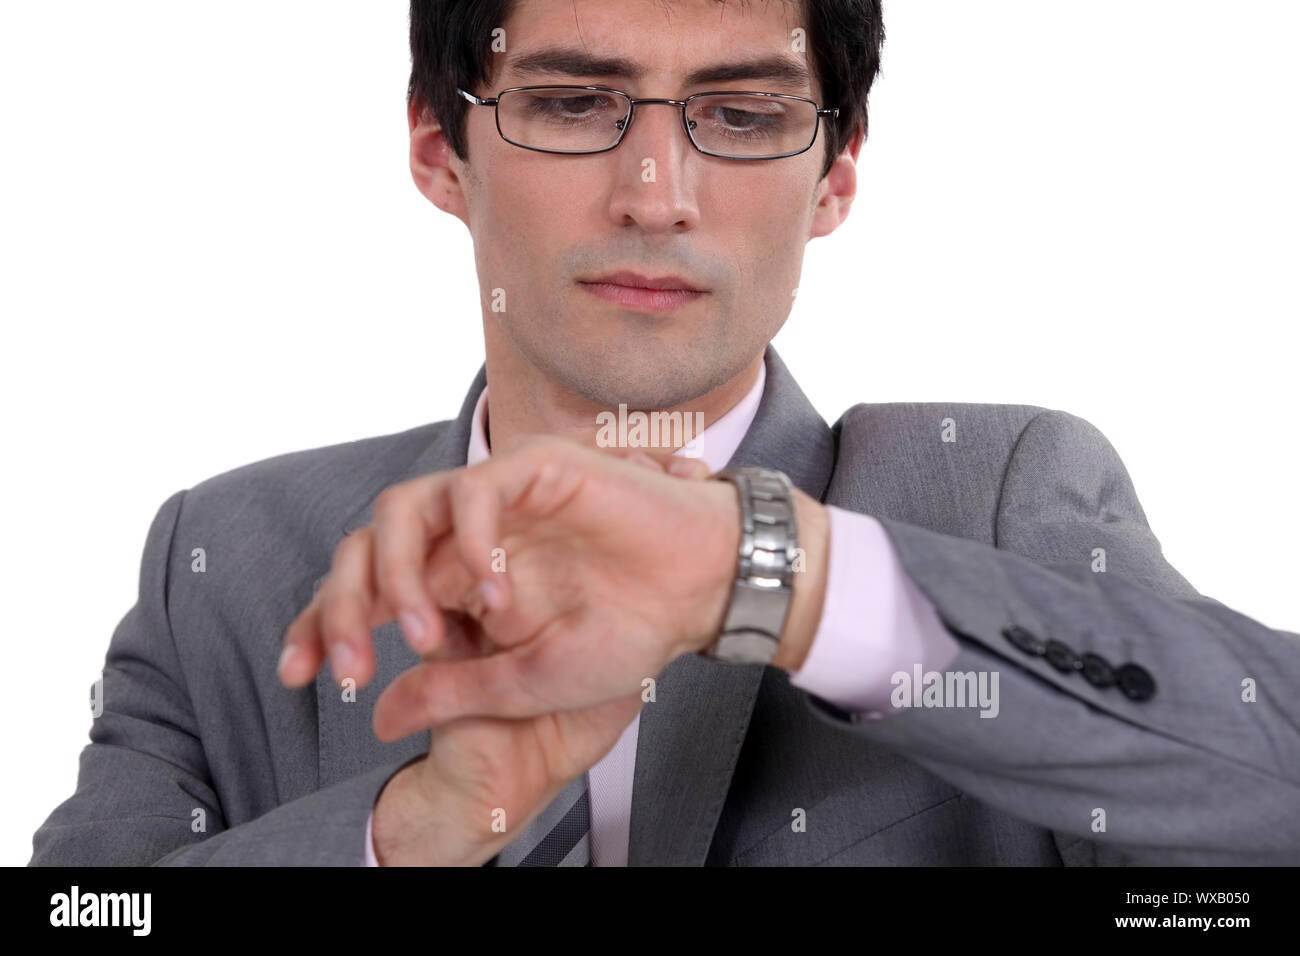 Businessman checking time on wrist watch Stock Photo